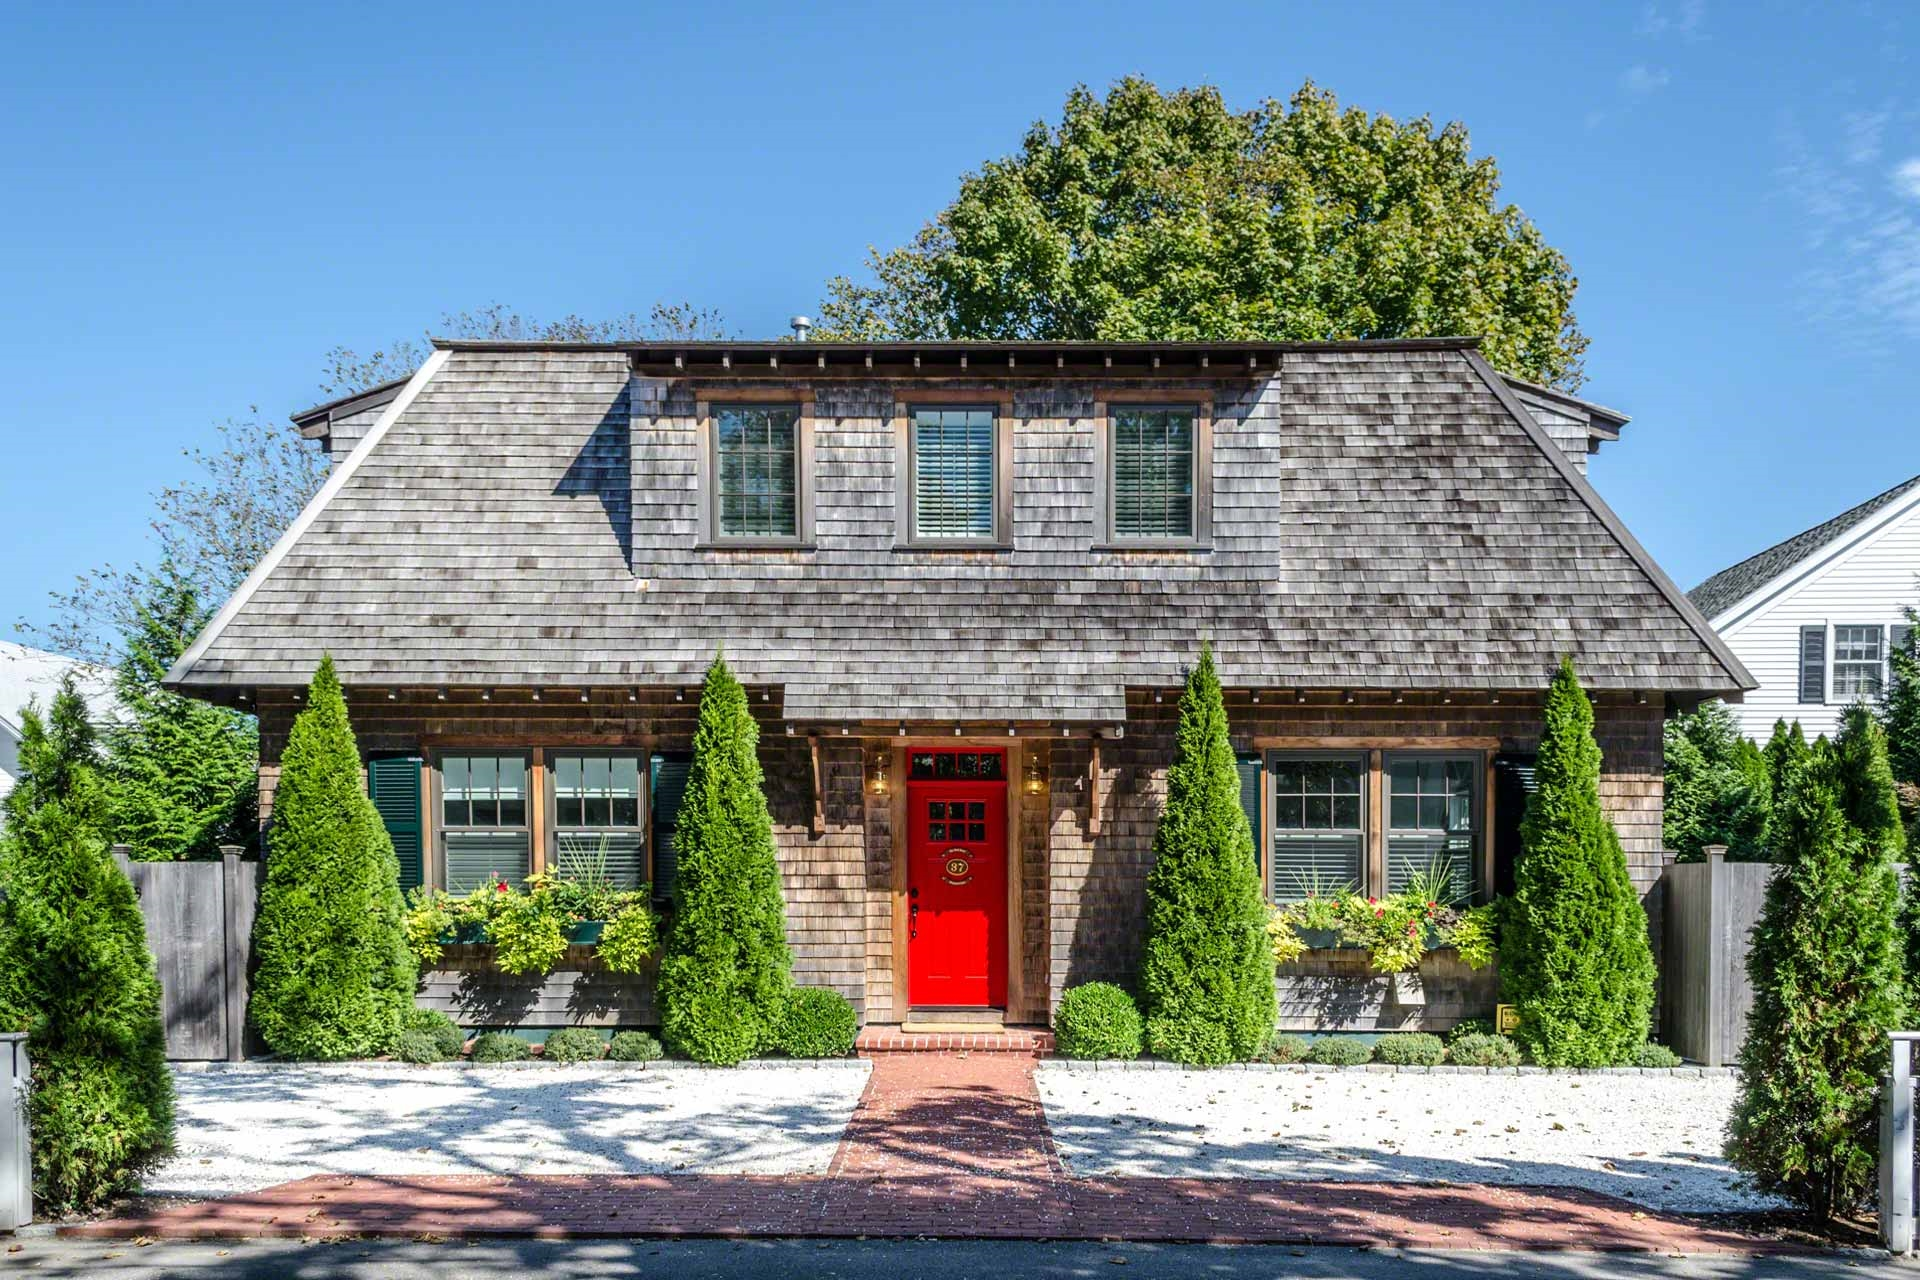 37 Simpsons Lane, Edgartown